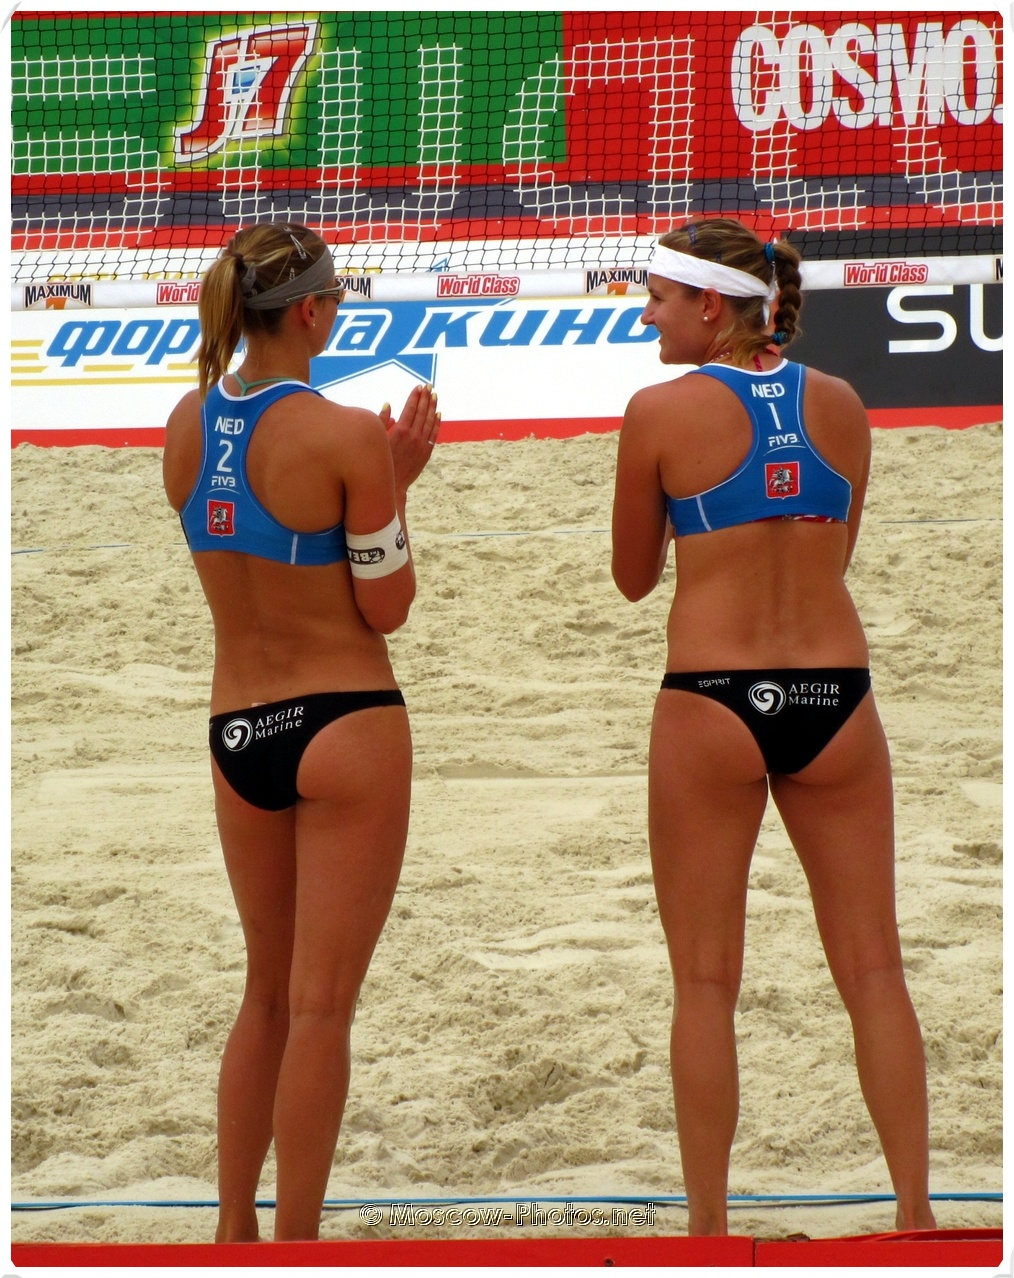 The Netherlands women's team before the beach volleyball game